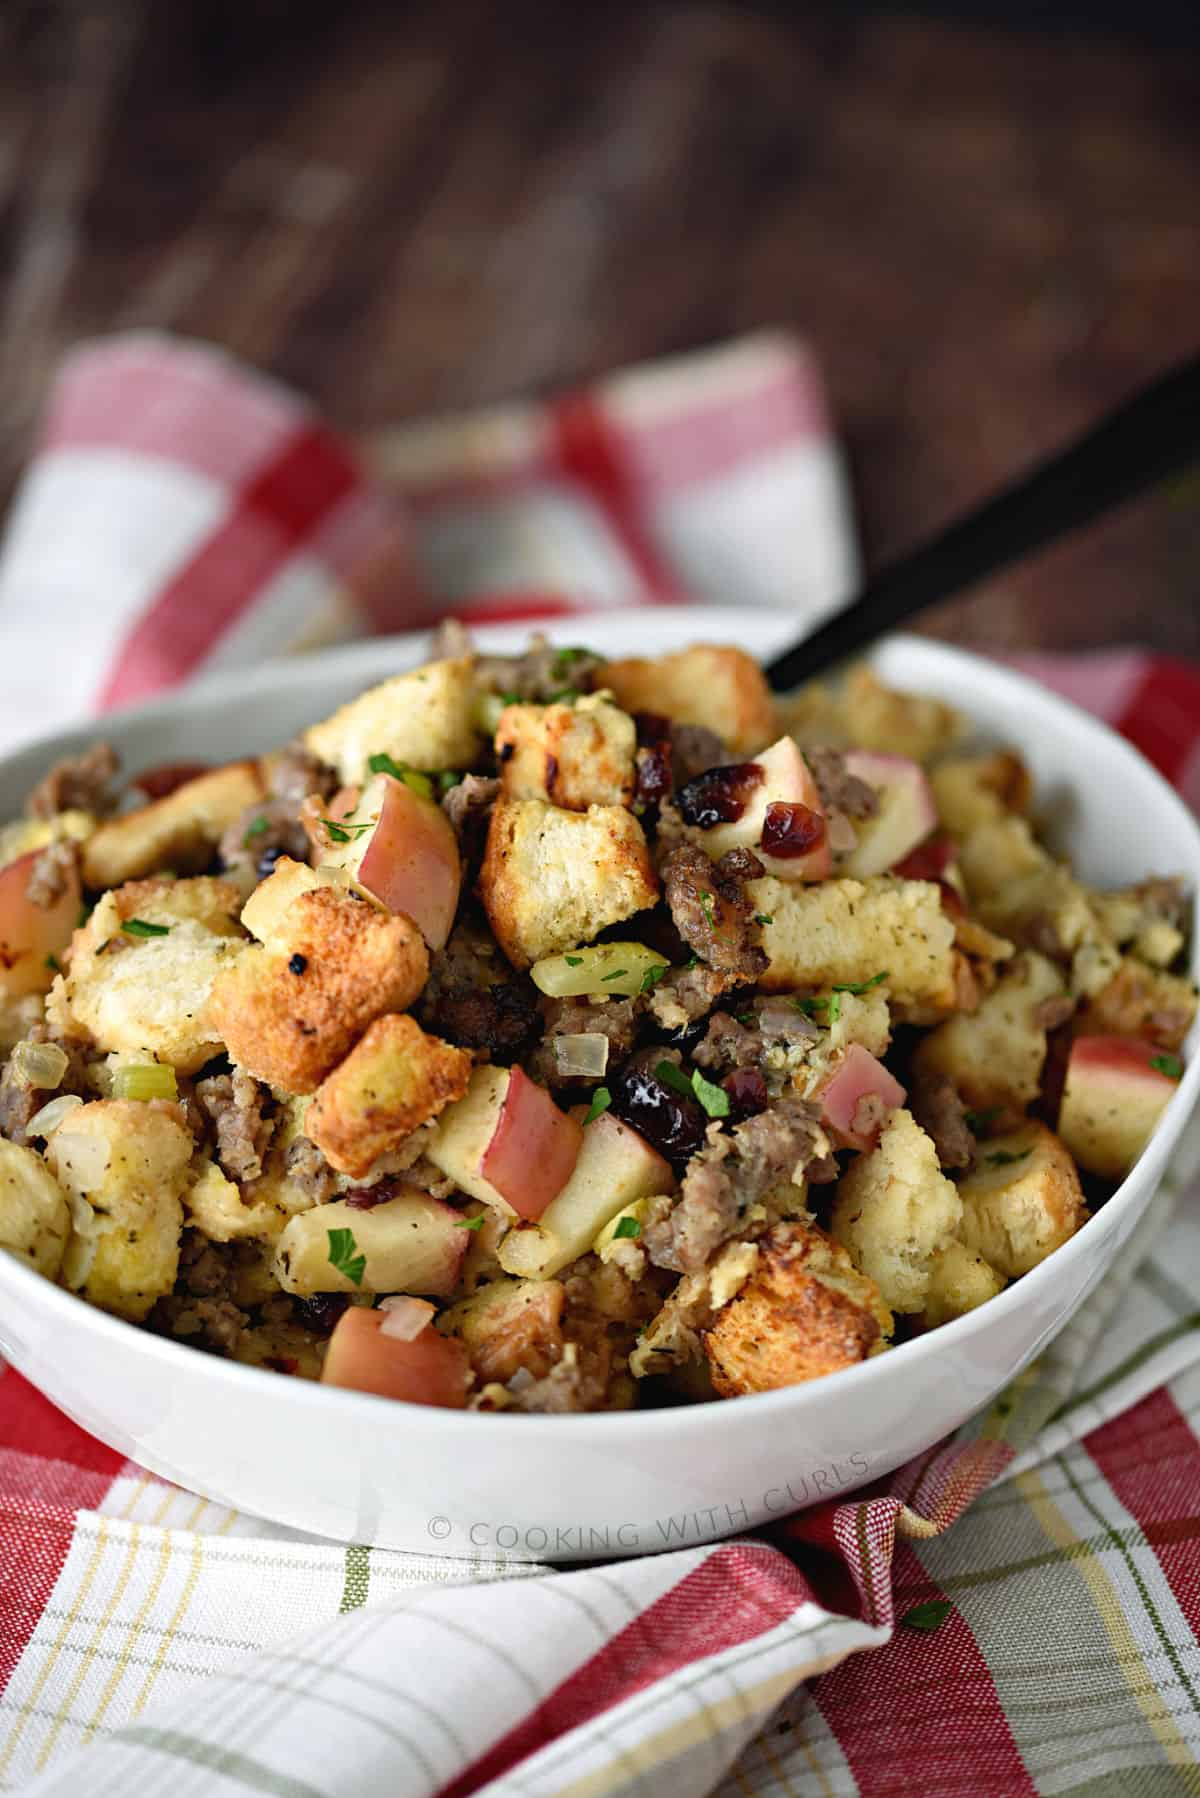 sausage apple and cranberry stuffing studded with celery and onion in a large white bowl, sitting on a red plaid napkin.